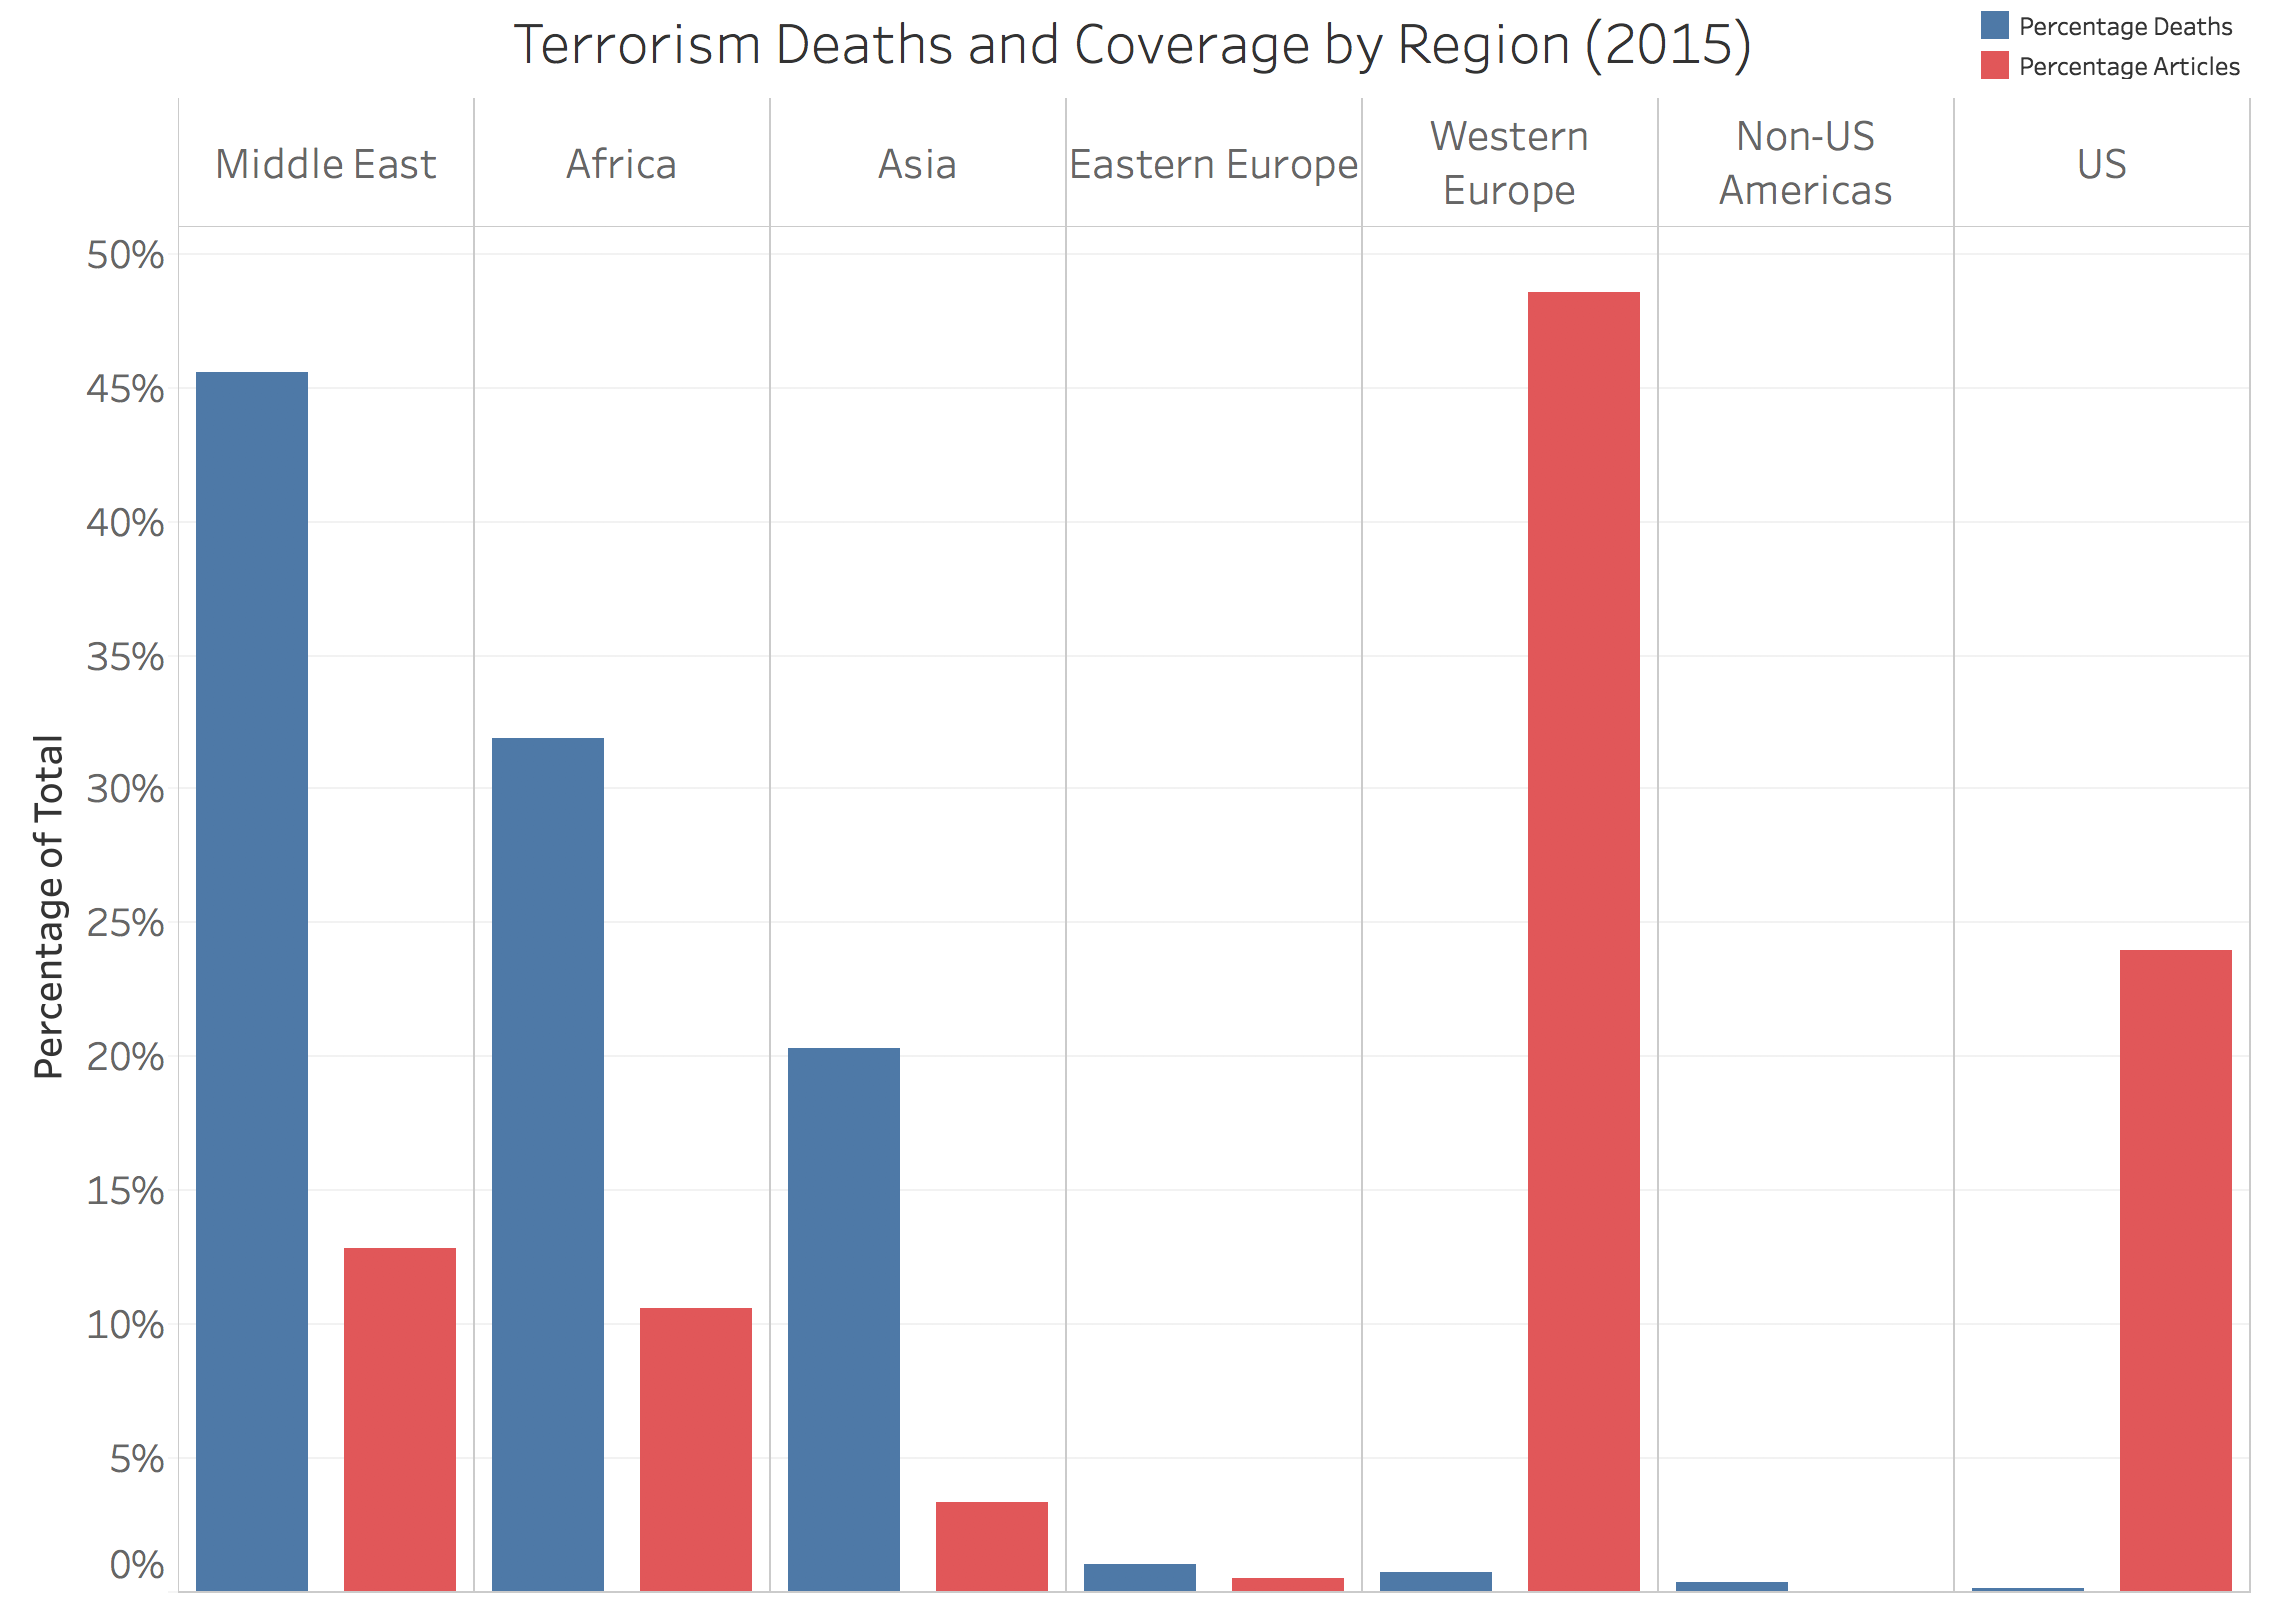 NY Times Terrorism Coverage vs. Deaths